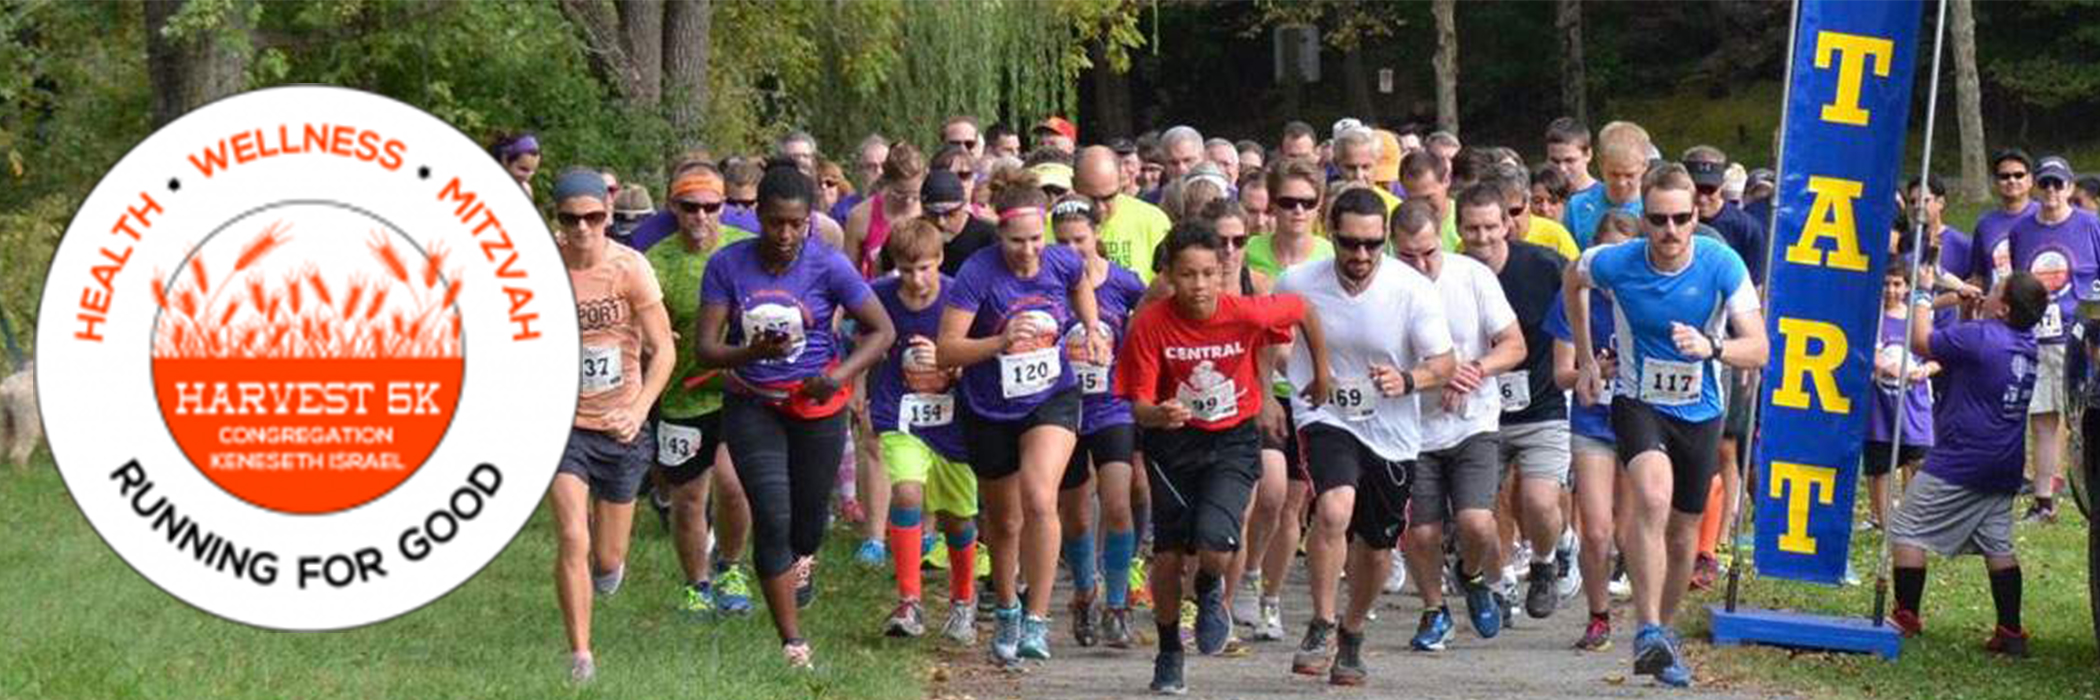 """<a href=""""https://www.kilv.org/event/7th-annual-harvest-5k.html#""""                                     target="""""""">                                                                 <span class=""""slider_title"""">                                     7th Annual Harvest 5K                                </span>                                                                 </a>                                                                                                                                                                                       <span class=""""slider_description"""">Join us in Allentown, Pennsylvania's beautiful Lehigh Parkway for 3.1 miles of walk, run or crawl taking place on 10/10.</span>                                                                                     <a href=""""https://www.kilv.org/event/7th-annual-harvest-5k.html#"""" class=""""slider_link""""                             target="""""""">                             Click Here for Details                            </a>"""